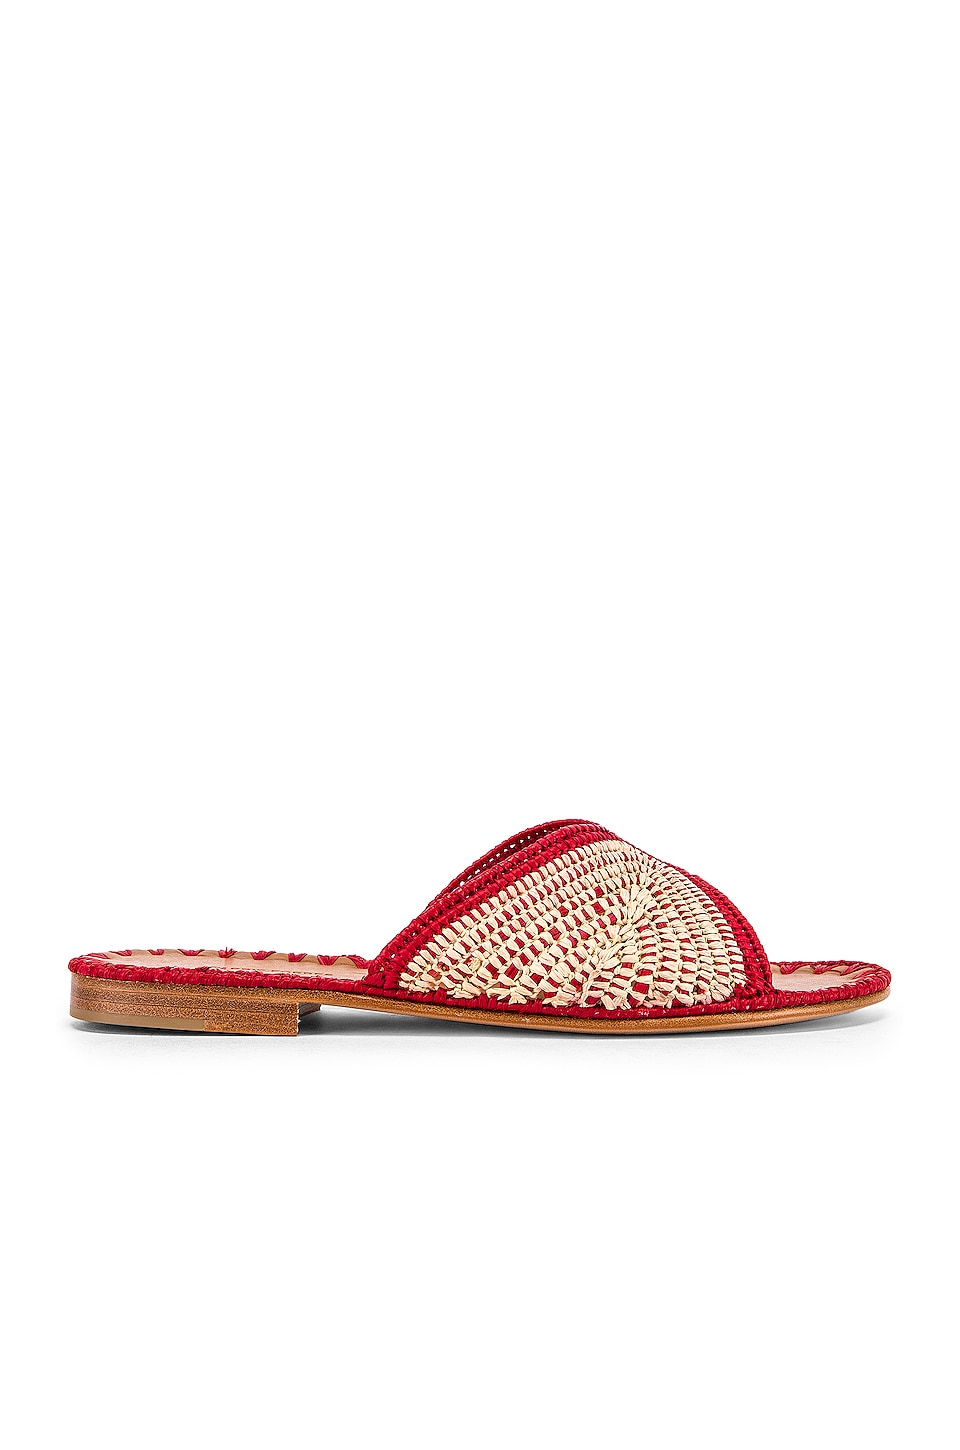 Carrie Forbes Salon Miste Sandal in Crimson & Natural